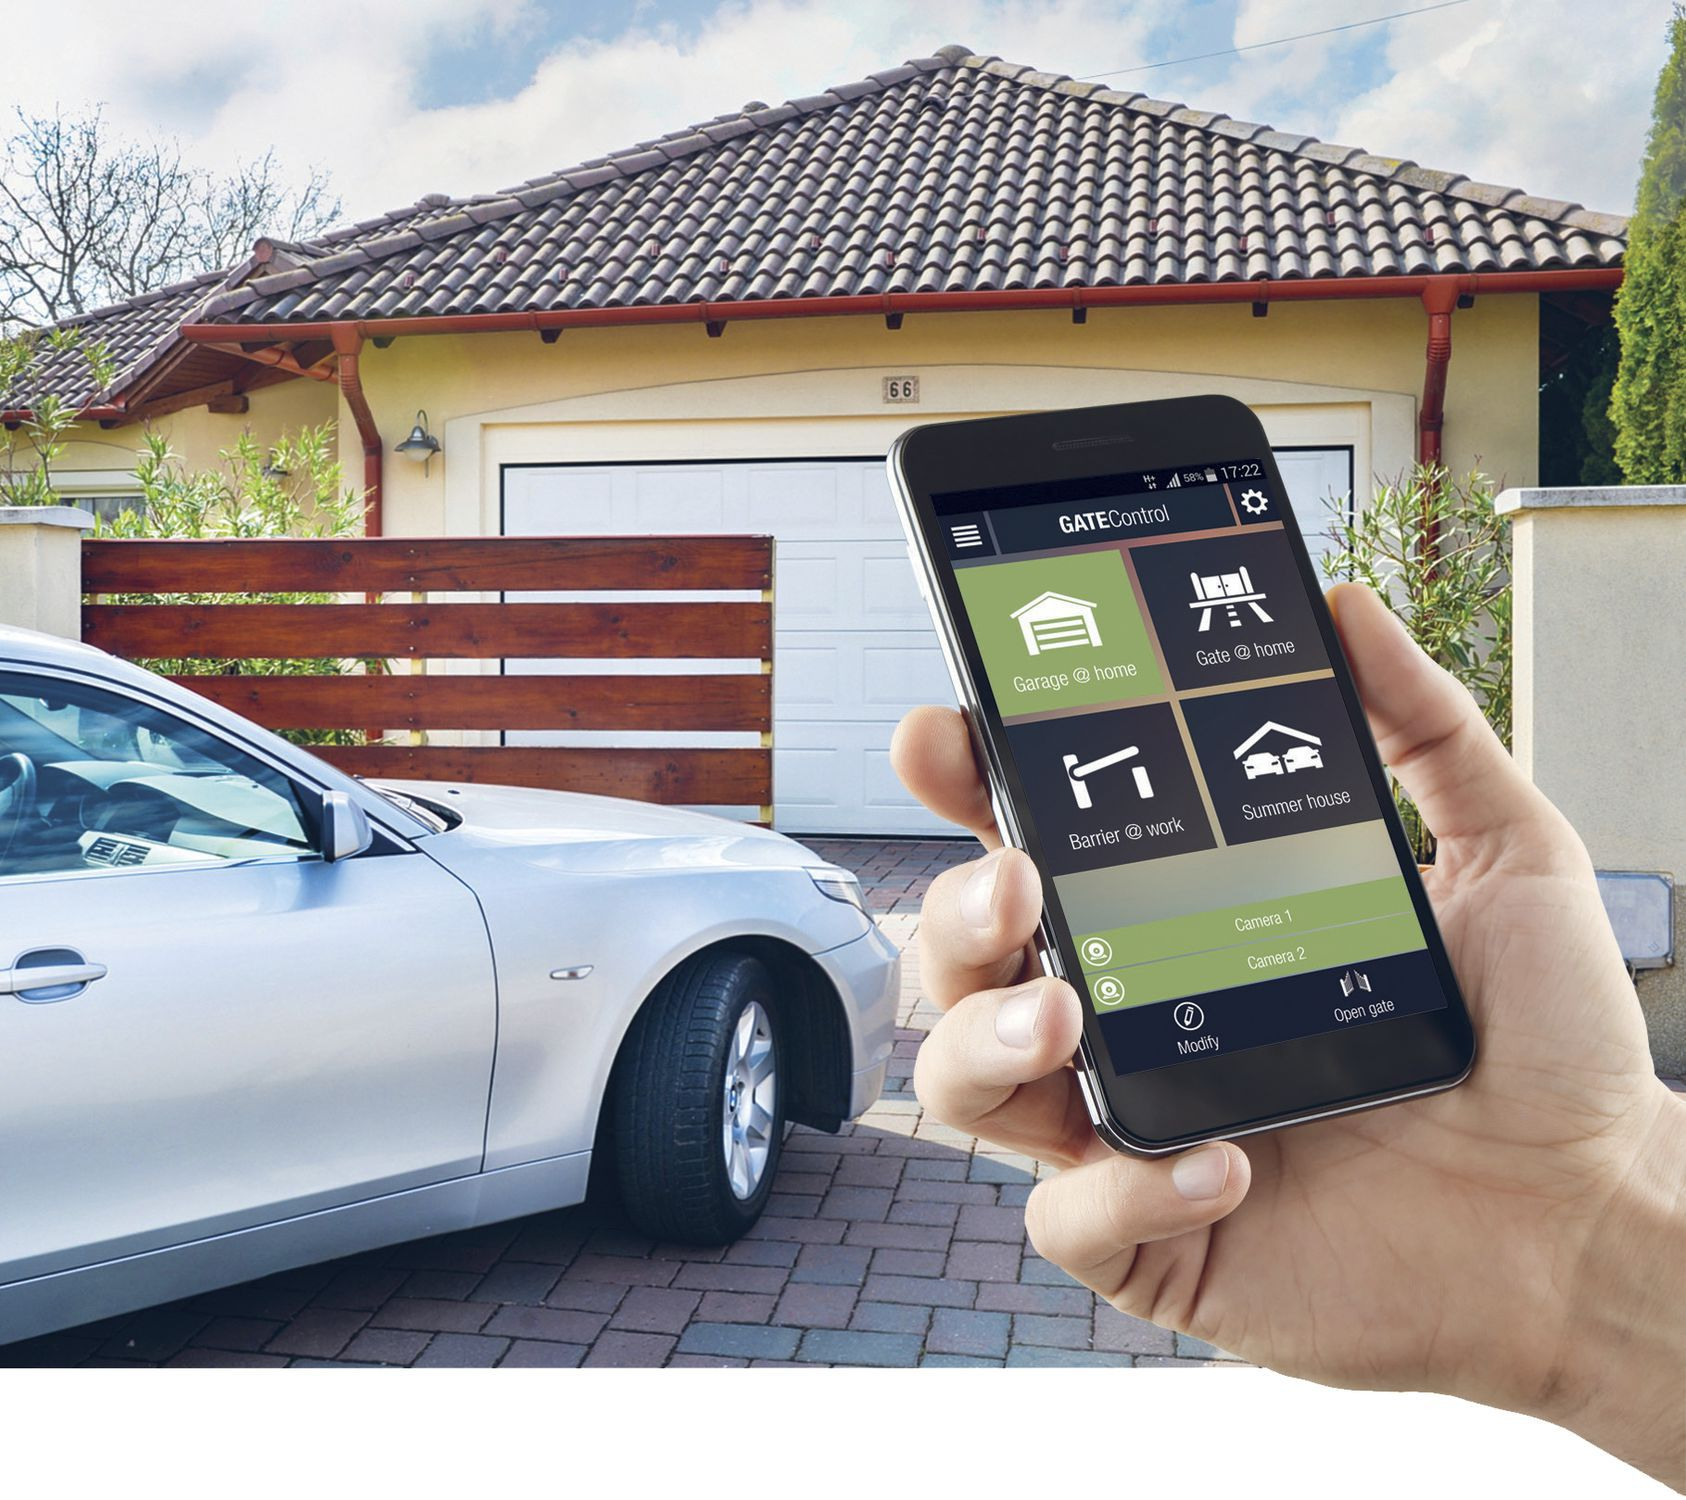 the rise of smart houses According to new research from berg insight the number of smart homes in america is on the rise | vivint systems call 1-844-383-8543 today to get automated.